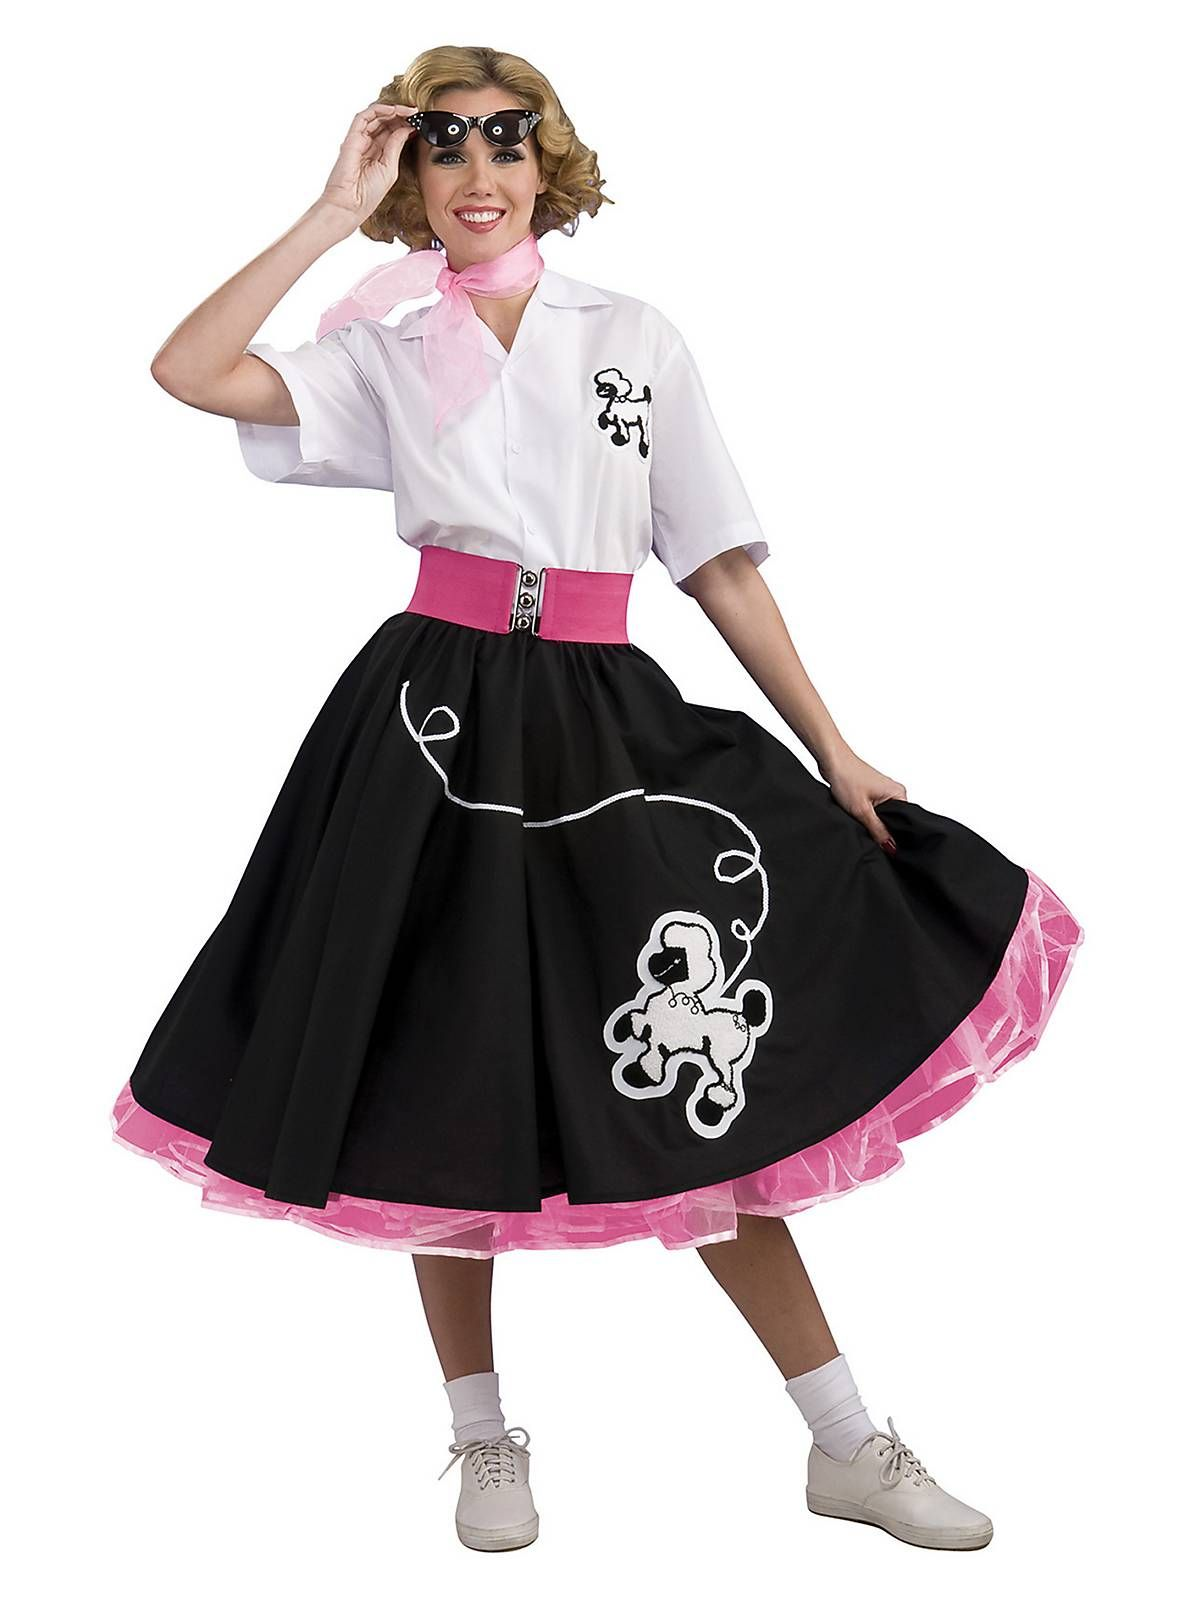 255fee24aec31 Black 50s Poodle Adult Costume for Women | Poodle Skirts | Poodle ...